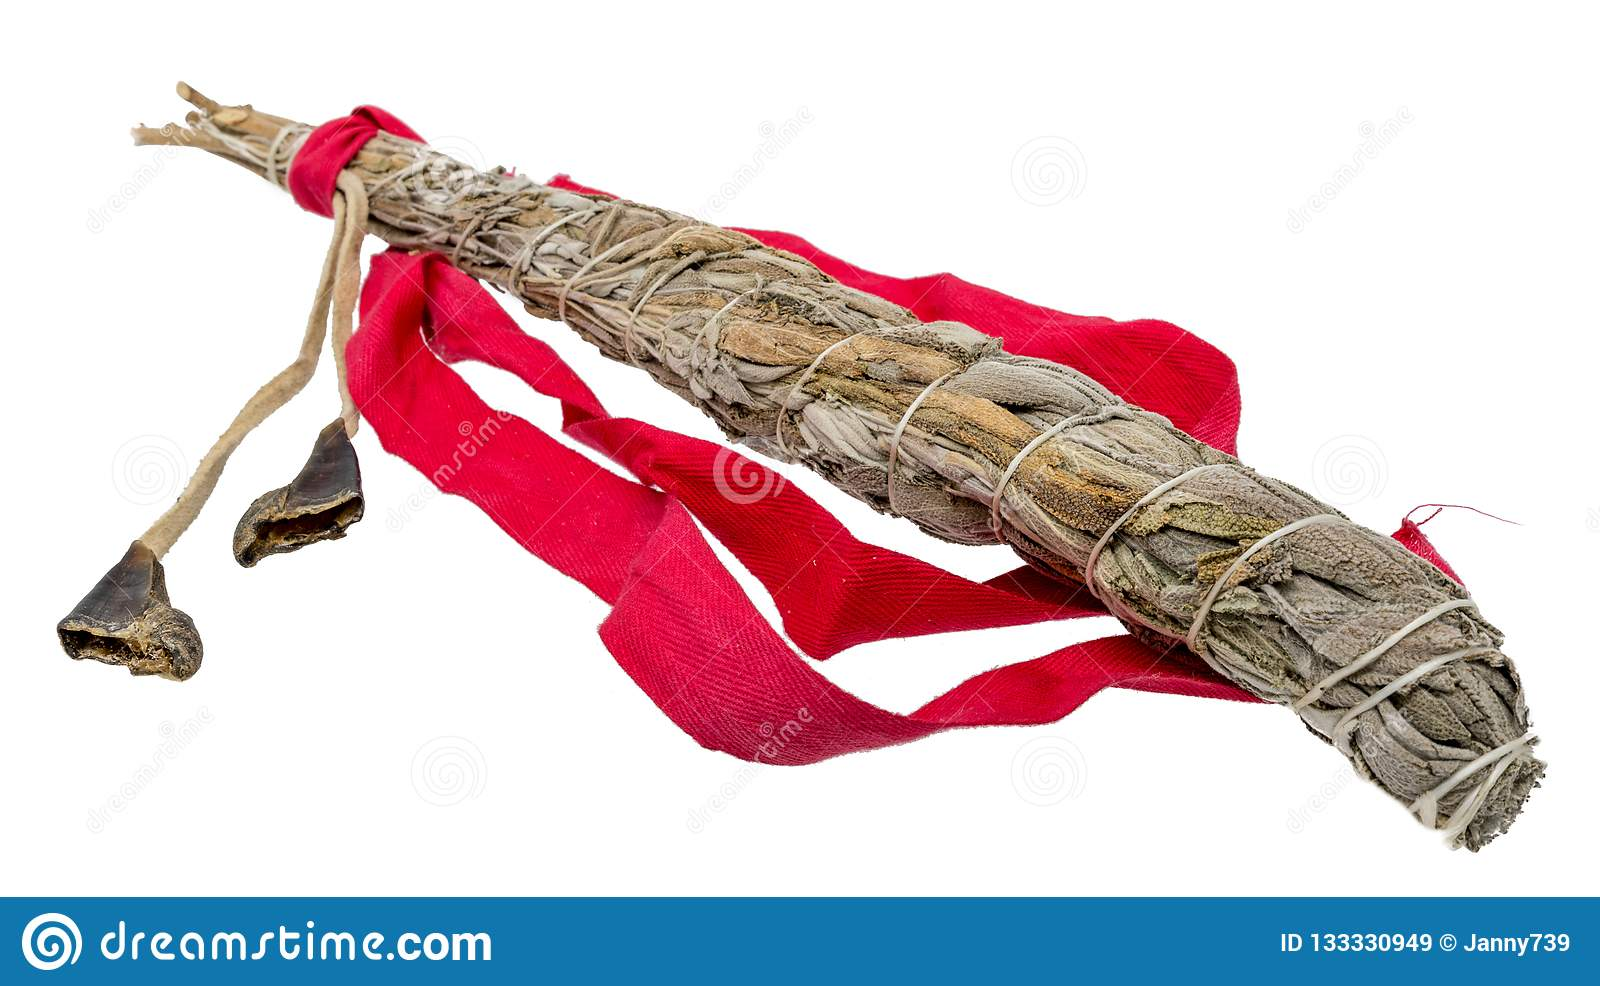 Tied bundle of white sage for smudging in the esoteric Indian area isolated on white